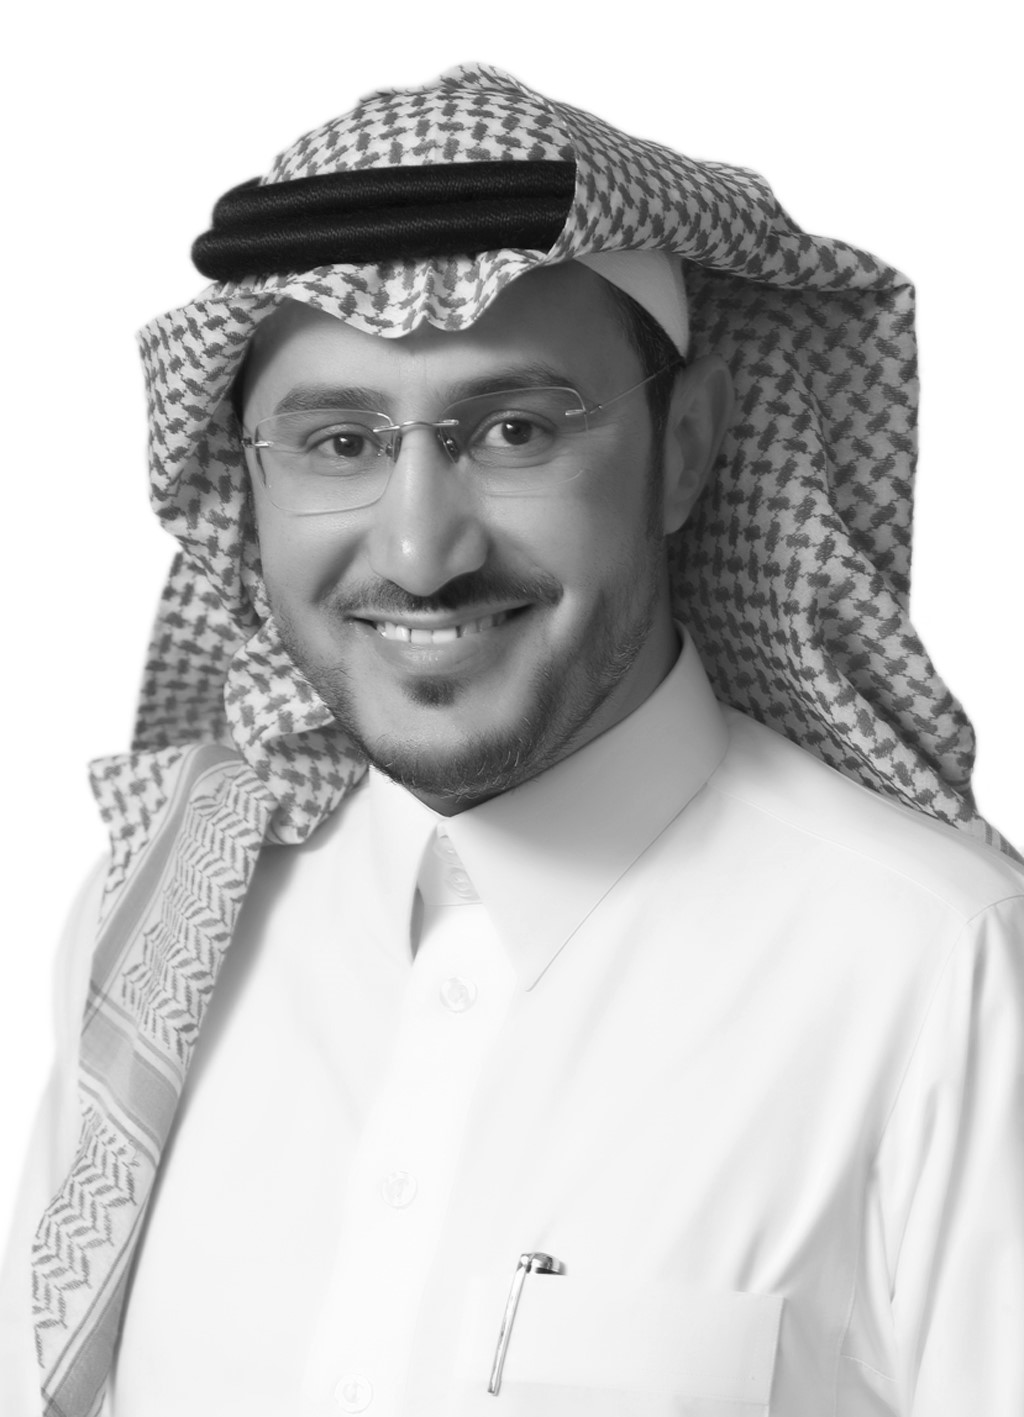 Mohammed AlDhabaan, Chairman